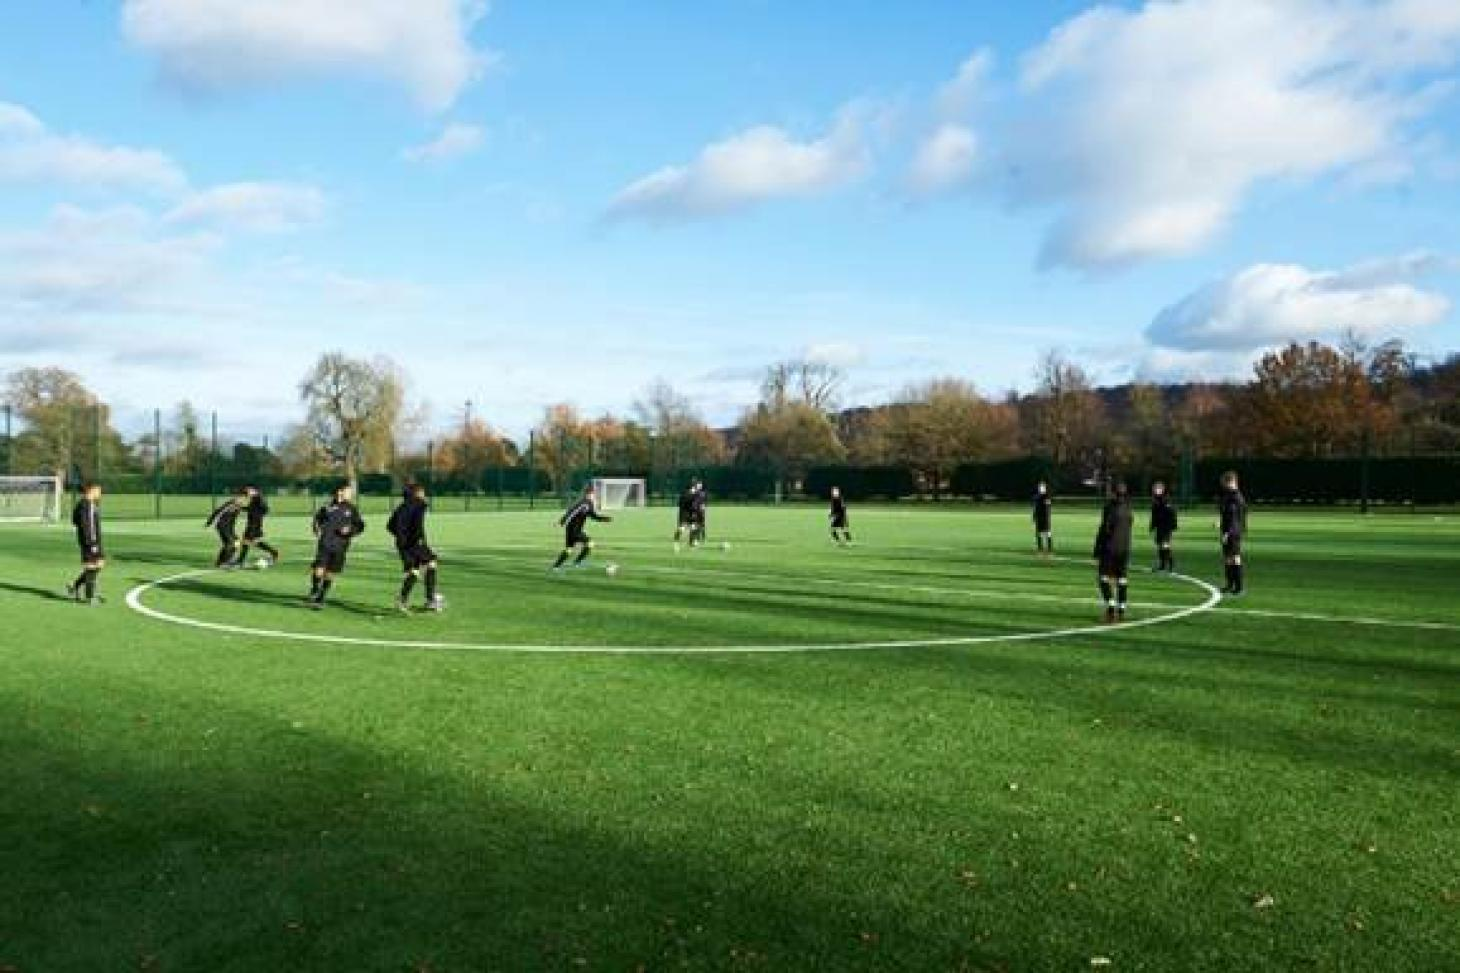 Bisham Abbey National Sports Centre 11 a side   Grass football pitch